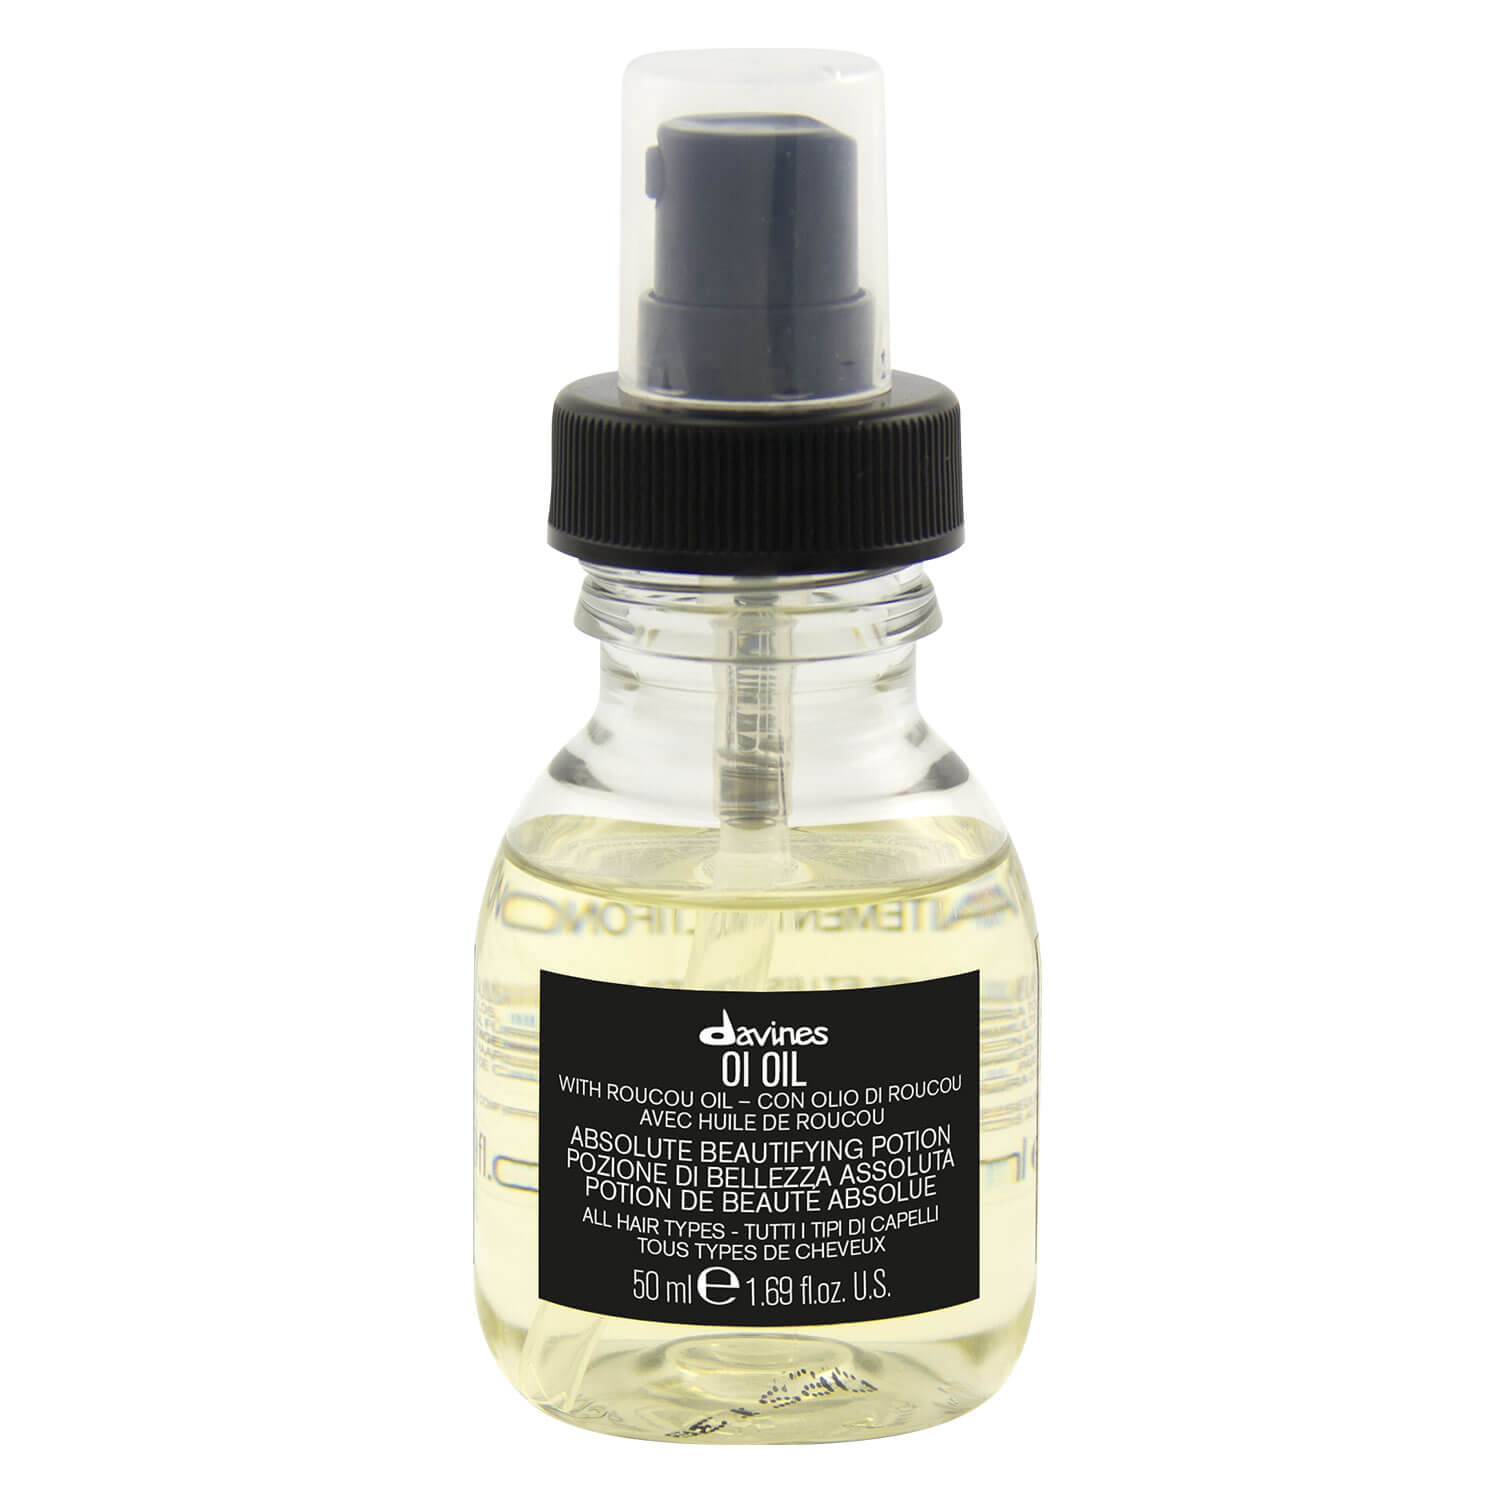 Oi - Oil Absolute Beautifying Potion